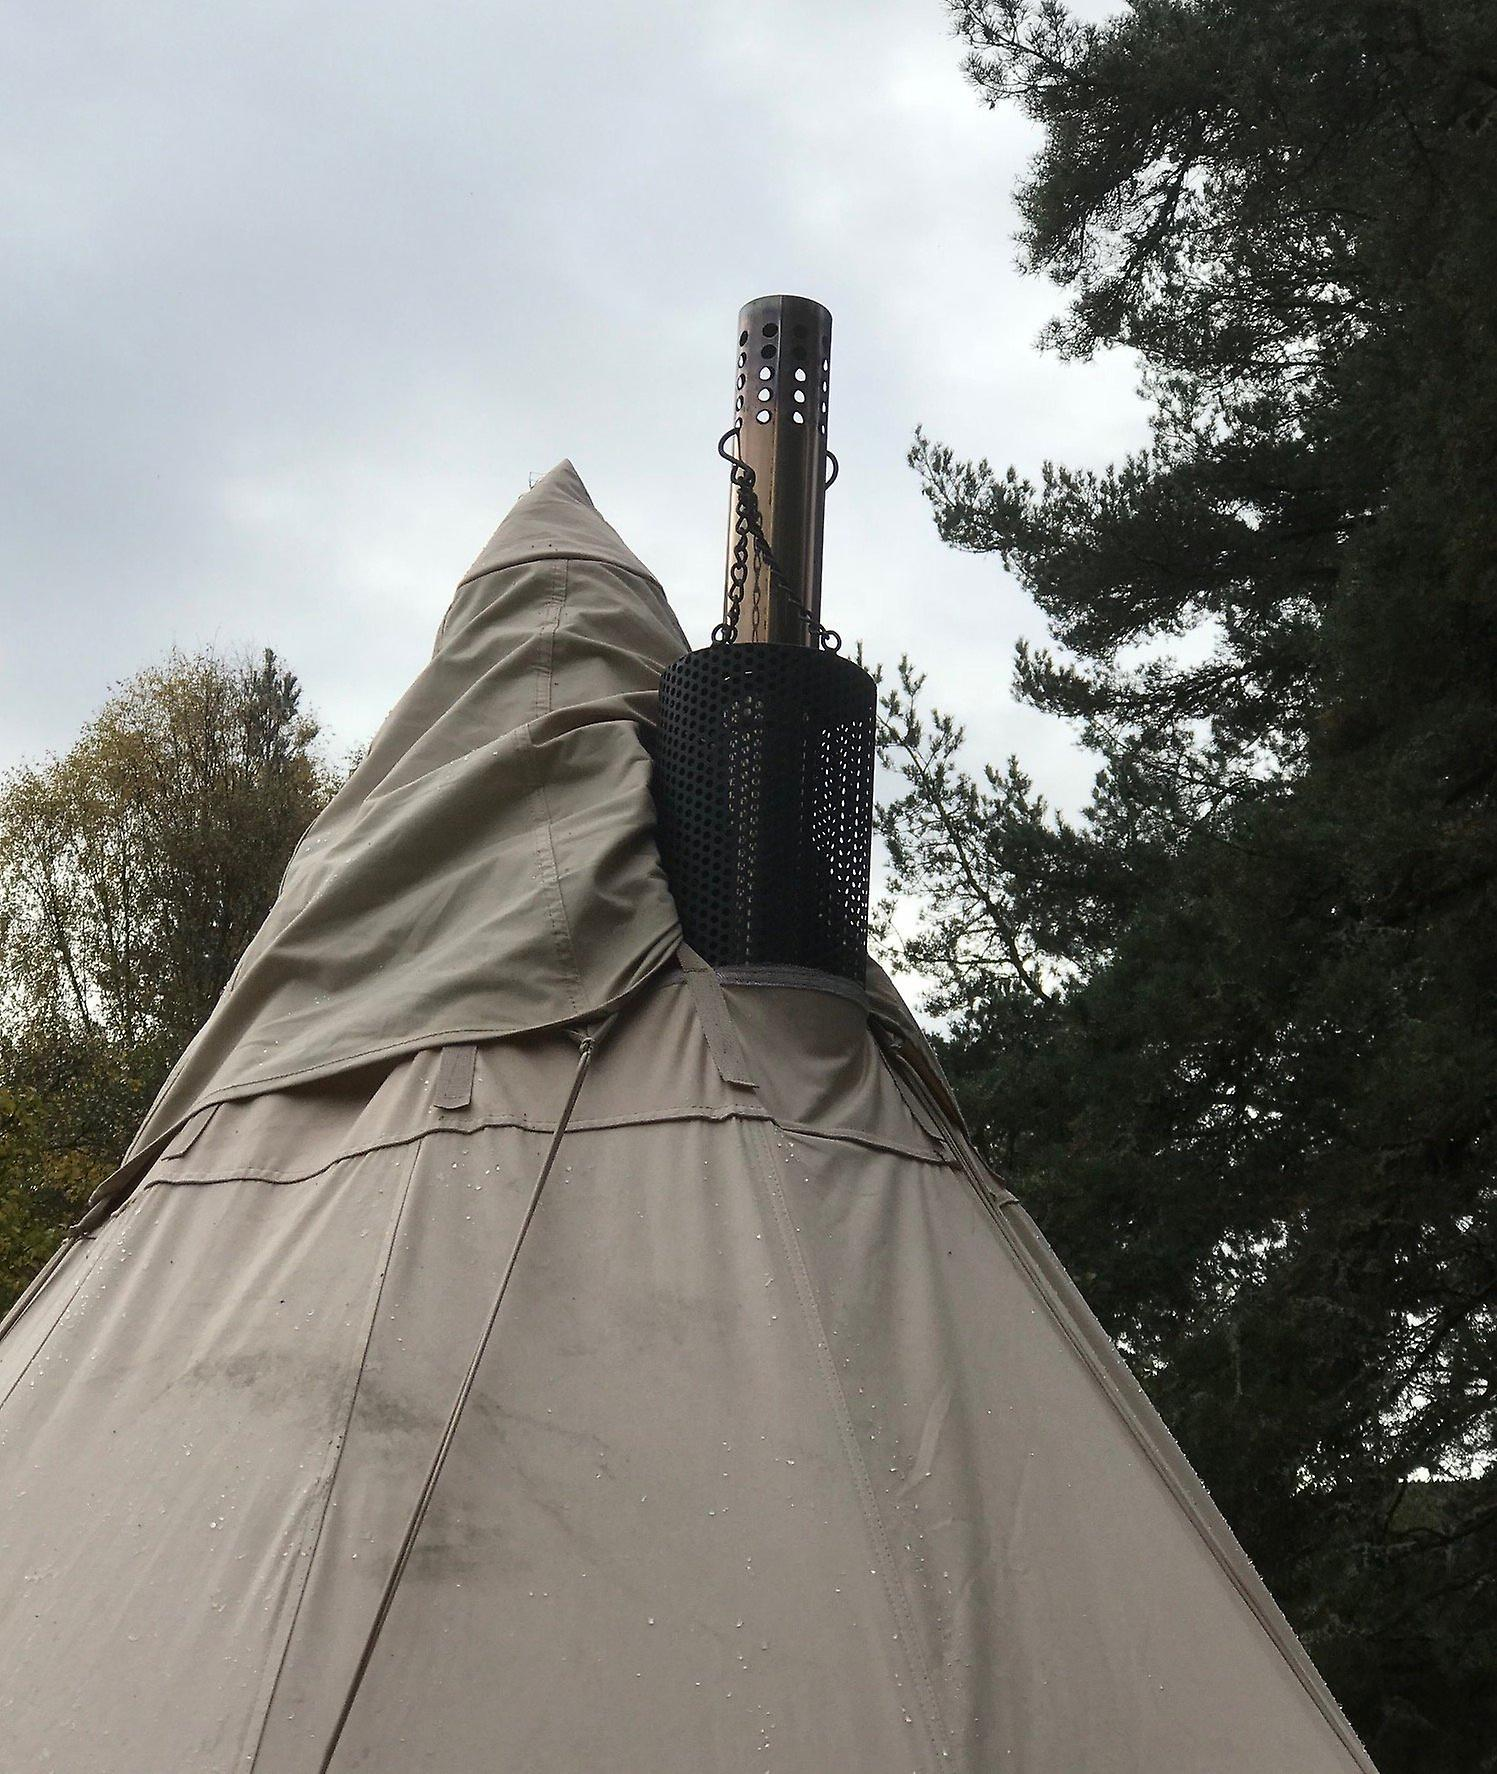 Tipi Sleeve for Frontier or Outbacker Stoves